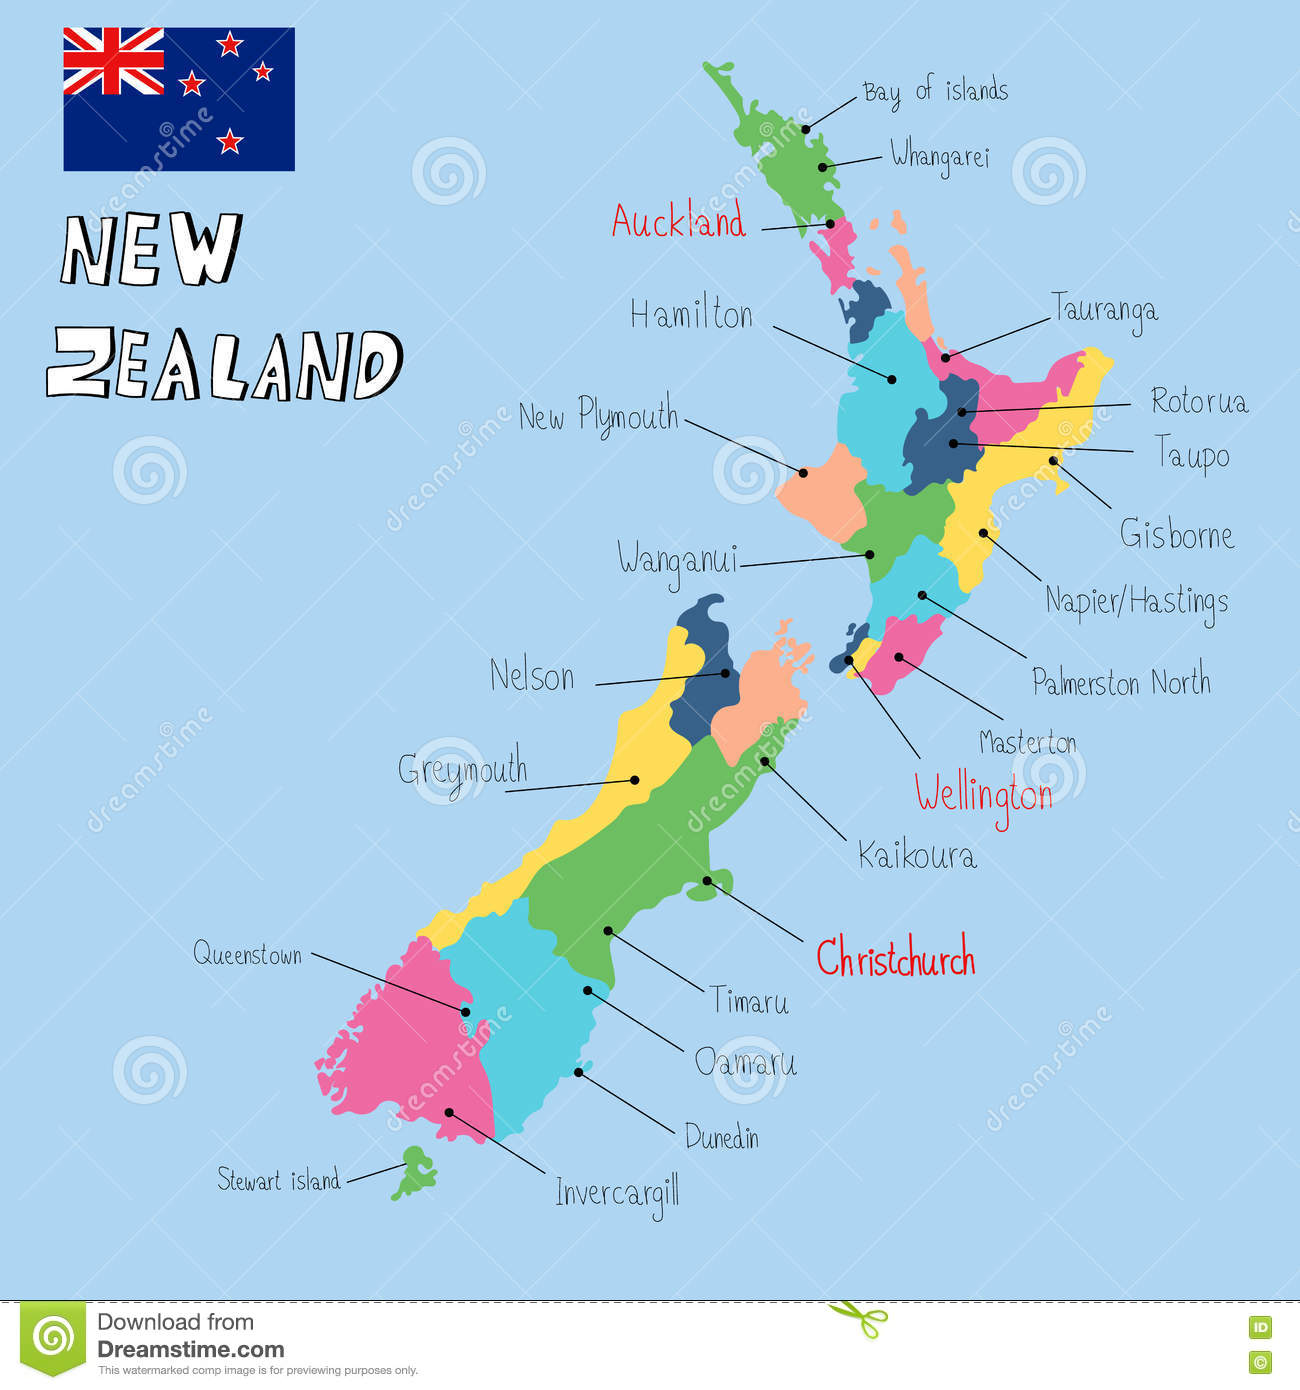 Map Of New Zealand Christchurch.New Zealand Map Hand Draw Vector Stock Vector Illustration Of